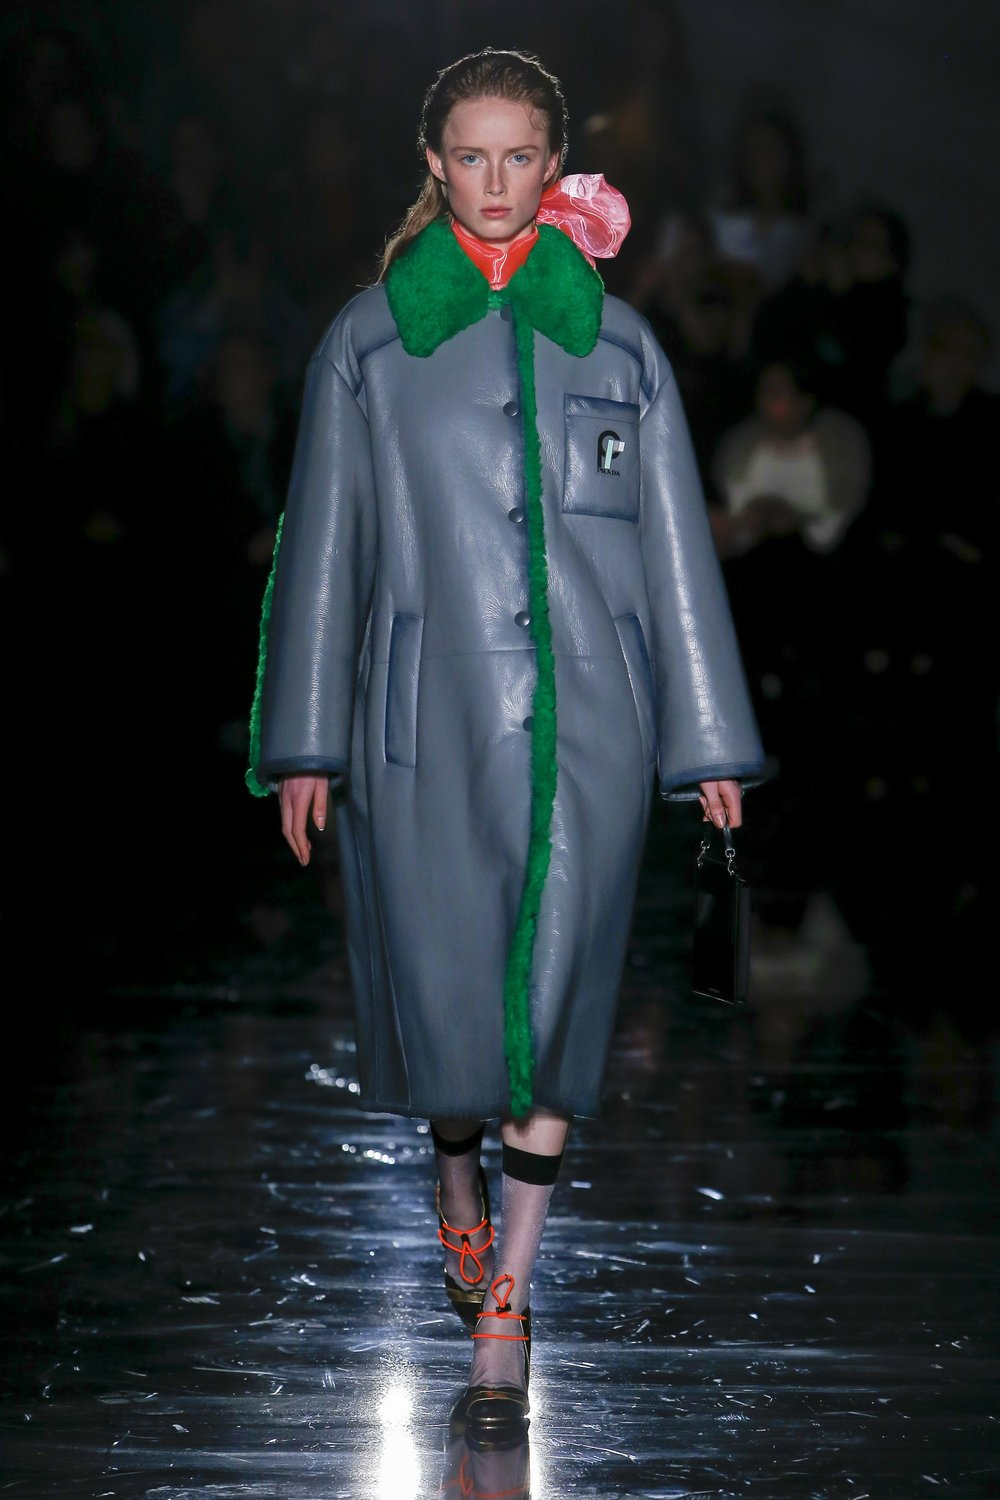 514a7a9aeccd Gucci, Prada and the Big Fashion Questions Posed in Milan — One Who ...